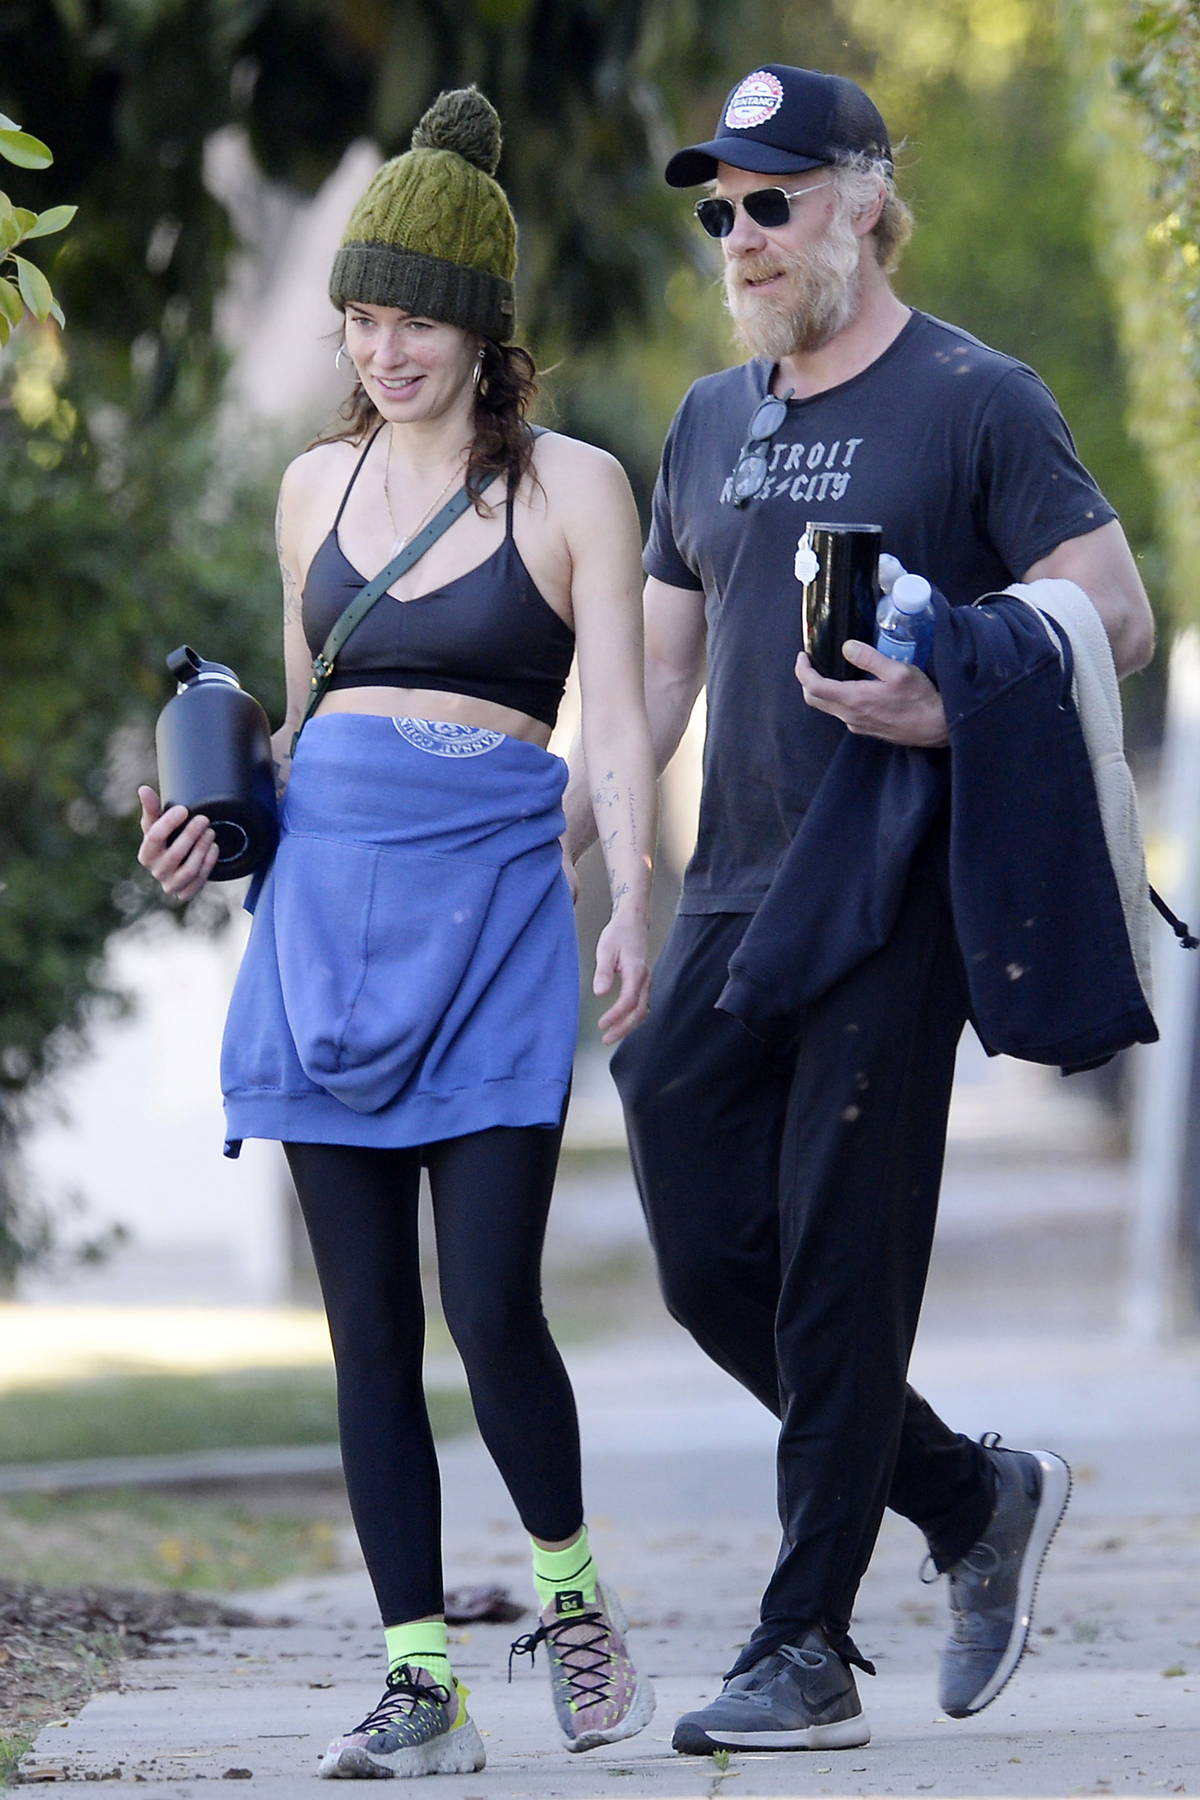 Lena Headey is all smiles after a workout at the gym with boyfriend Marc Menchaca in Hollywood, California